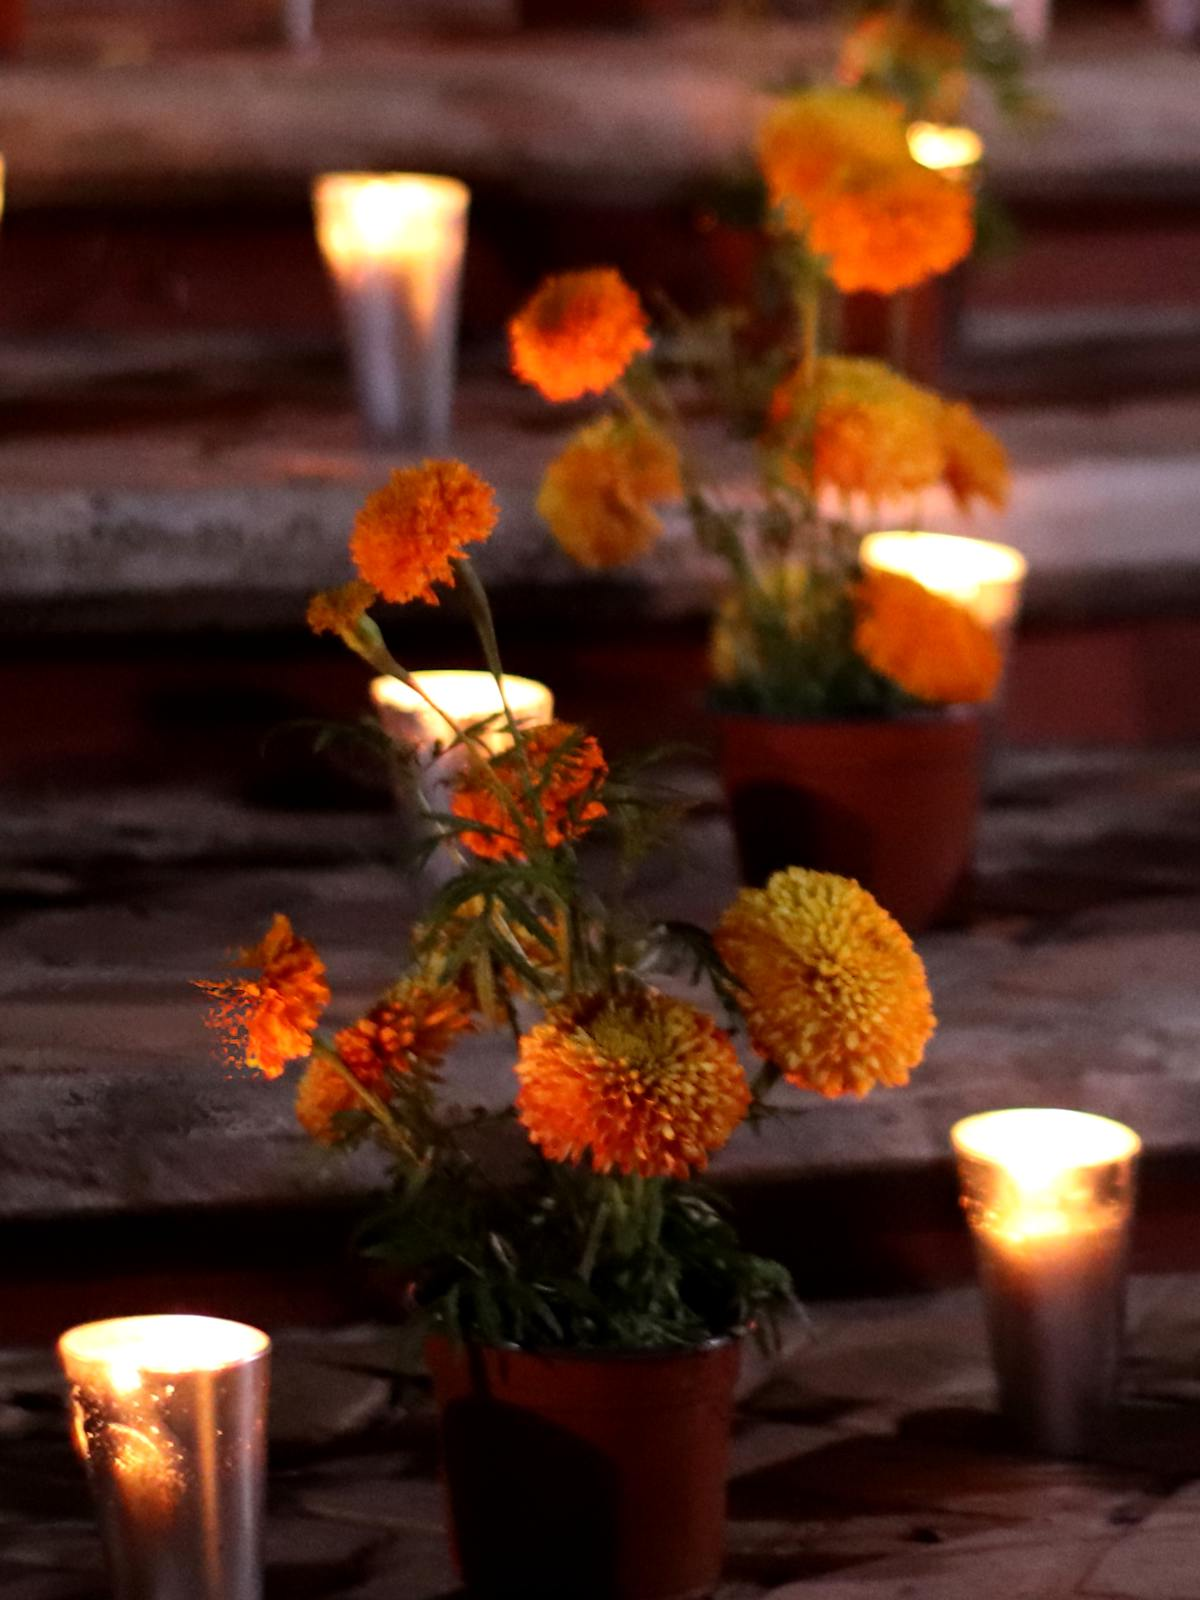 Chrysanthemum with candles in a cemetary